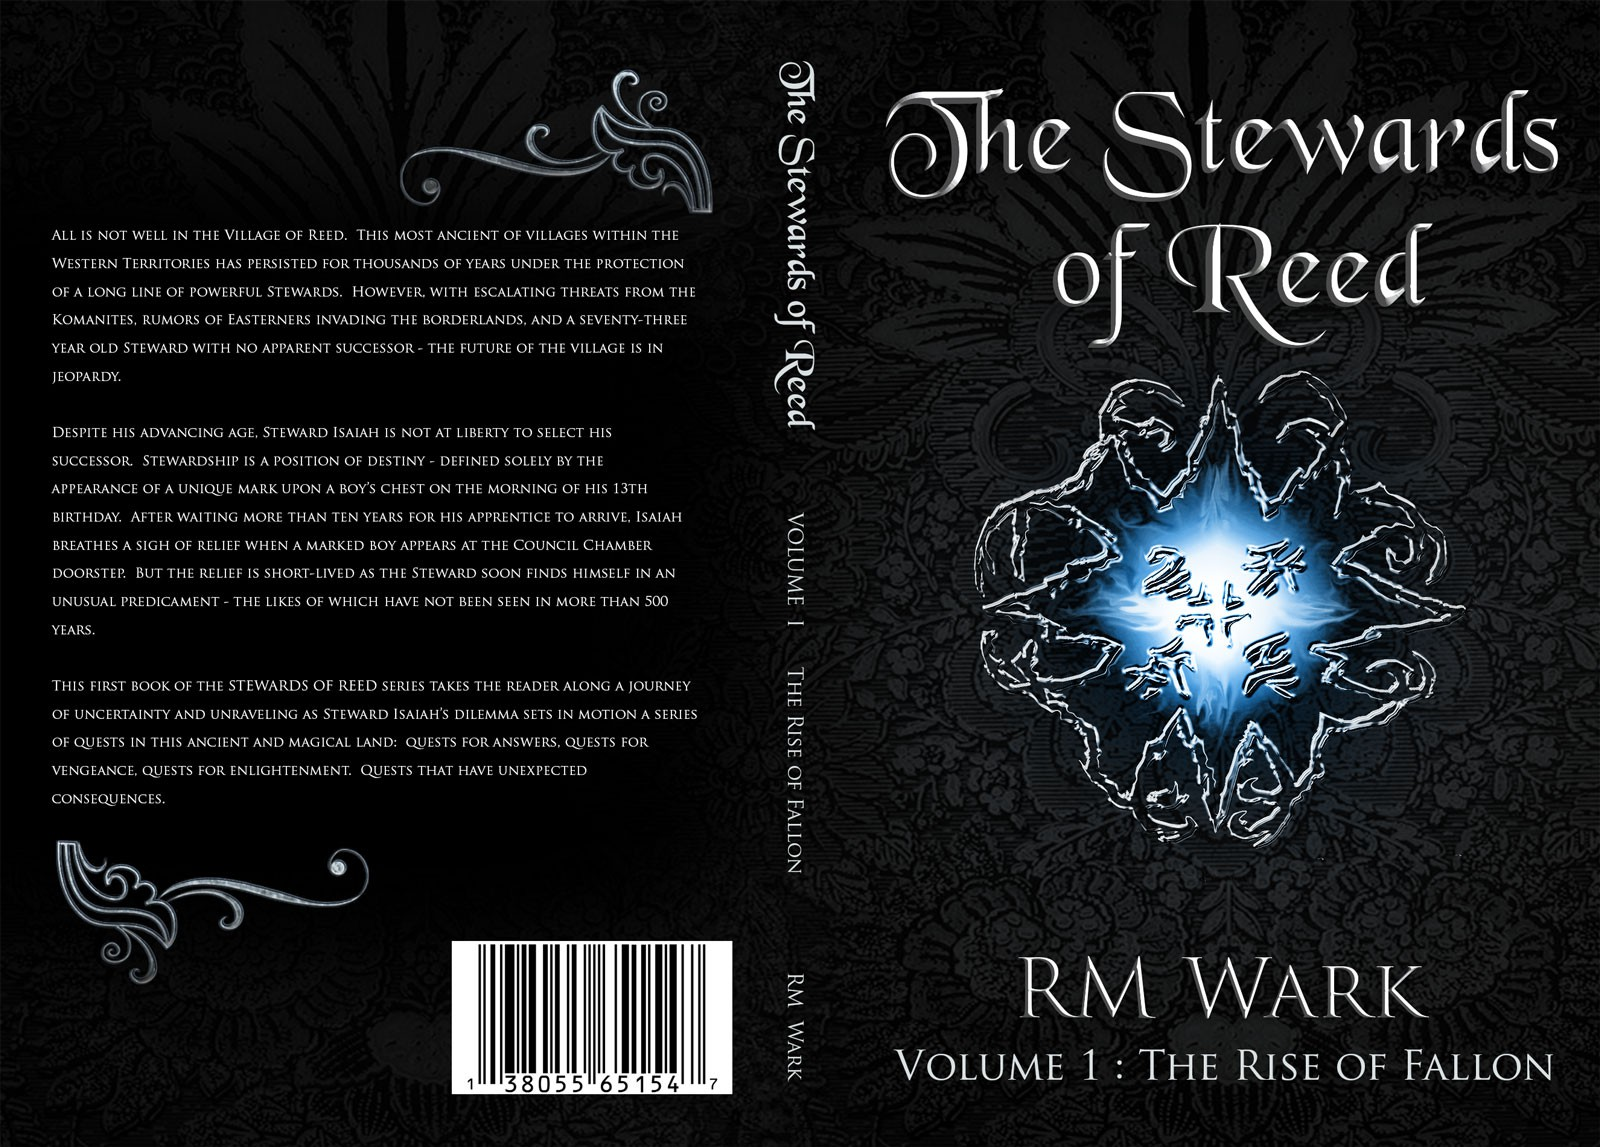 Create the next book or magazine cover for RM Wark